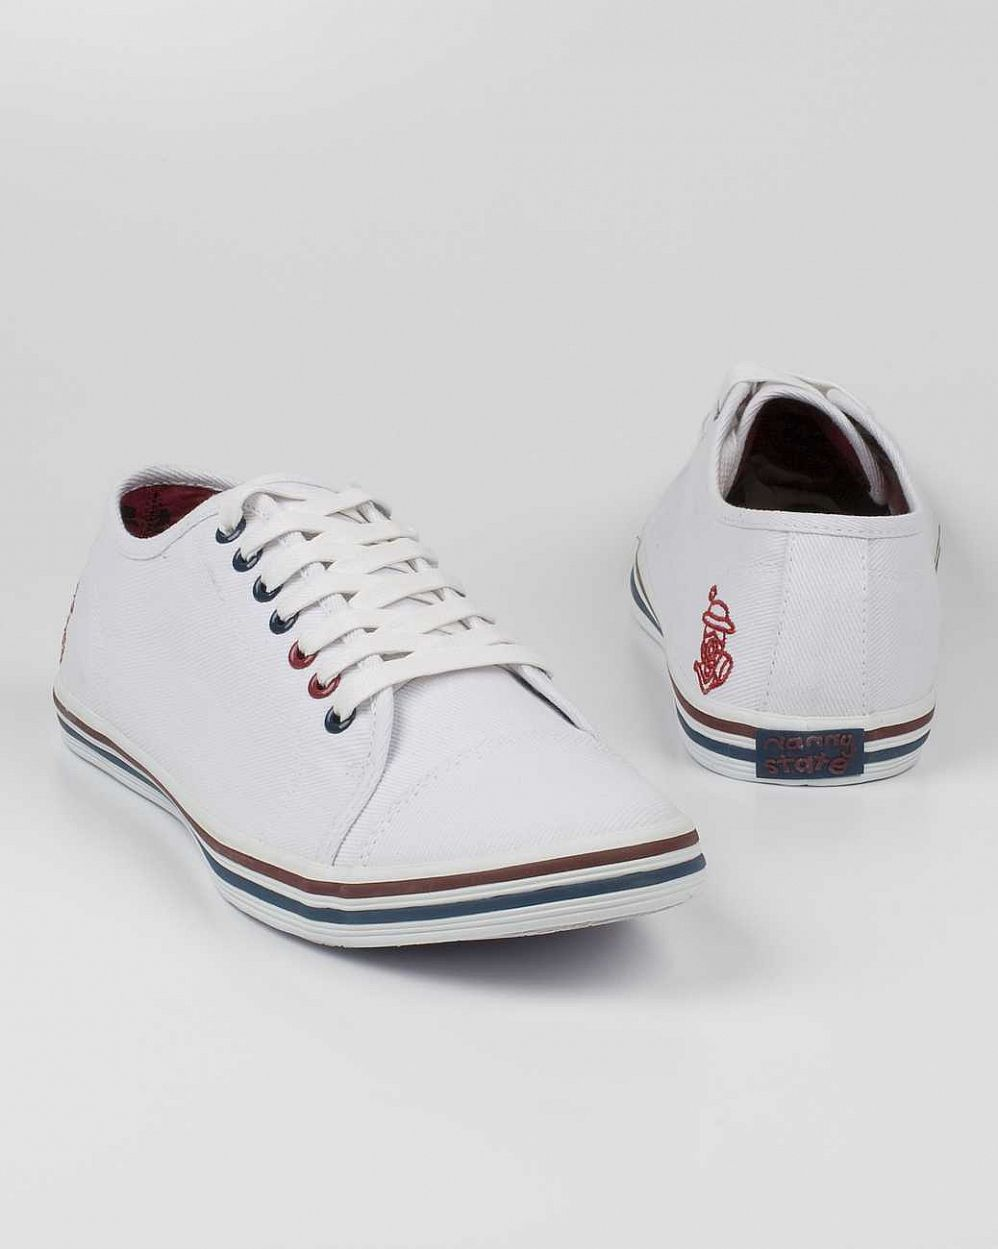 Кеды Nanny State Toe Shoe Canvas White Navy Bordeaux отзывы